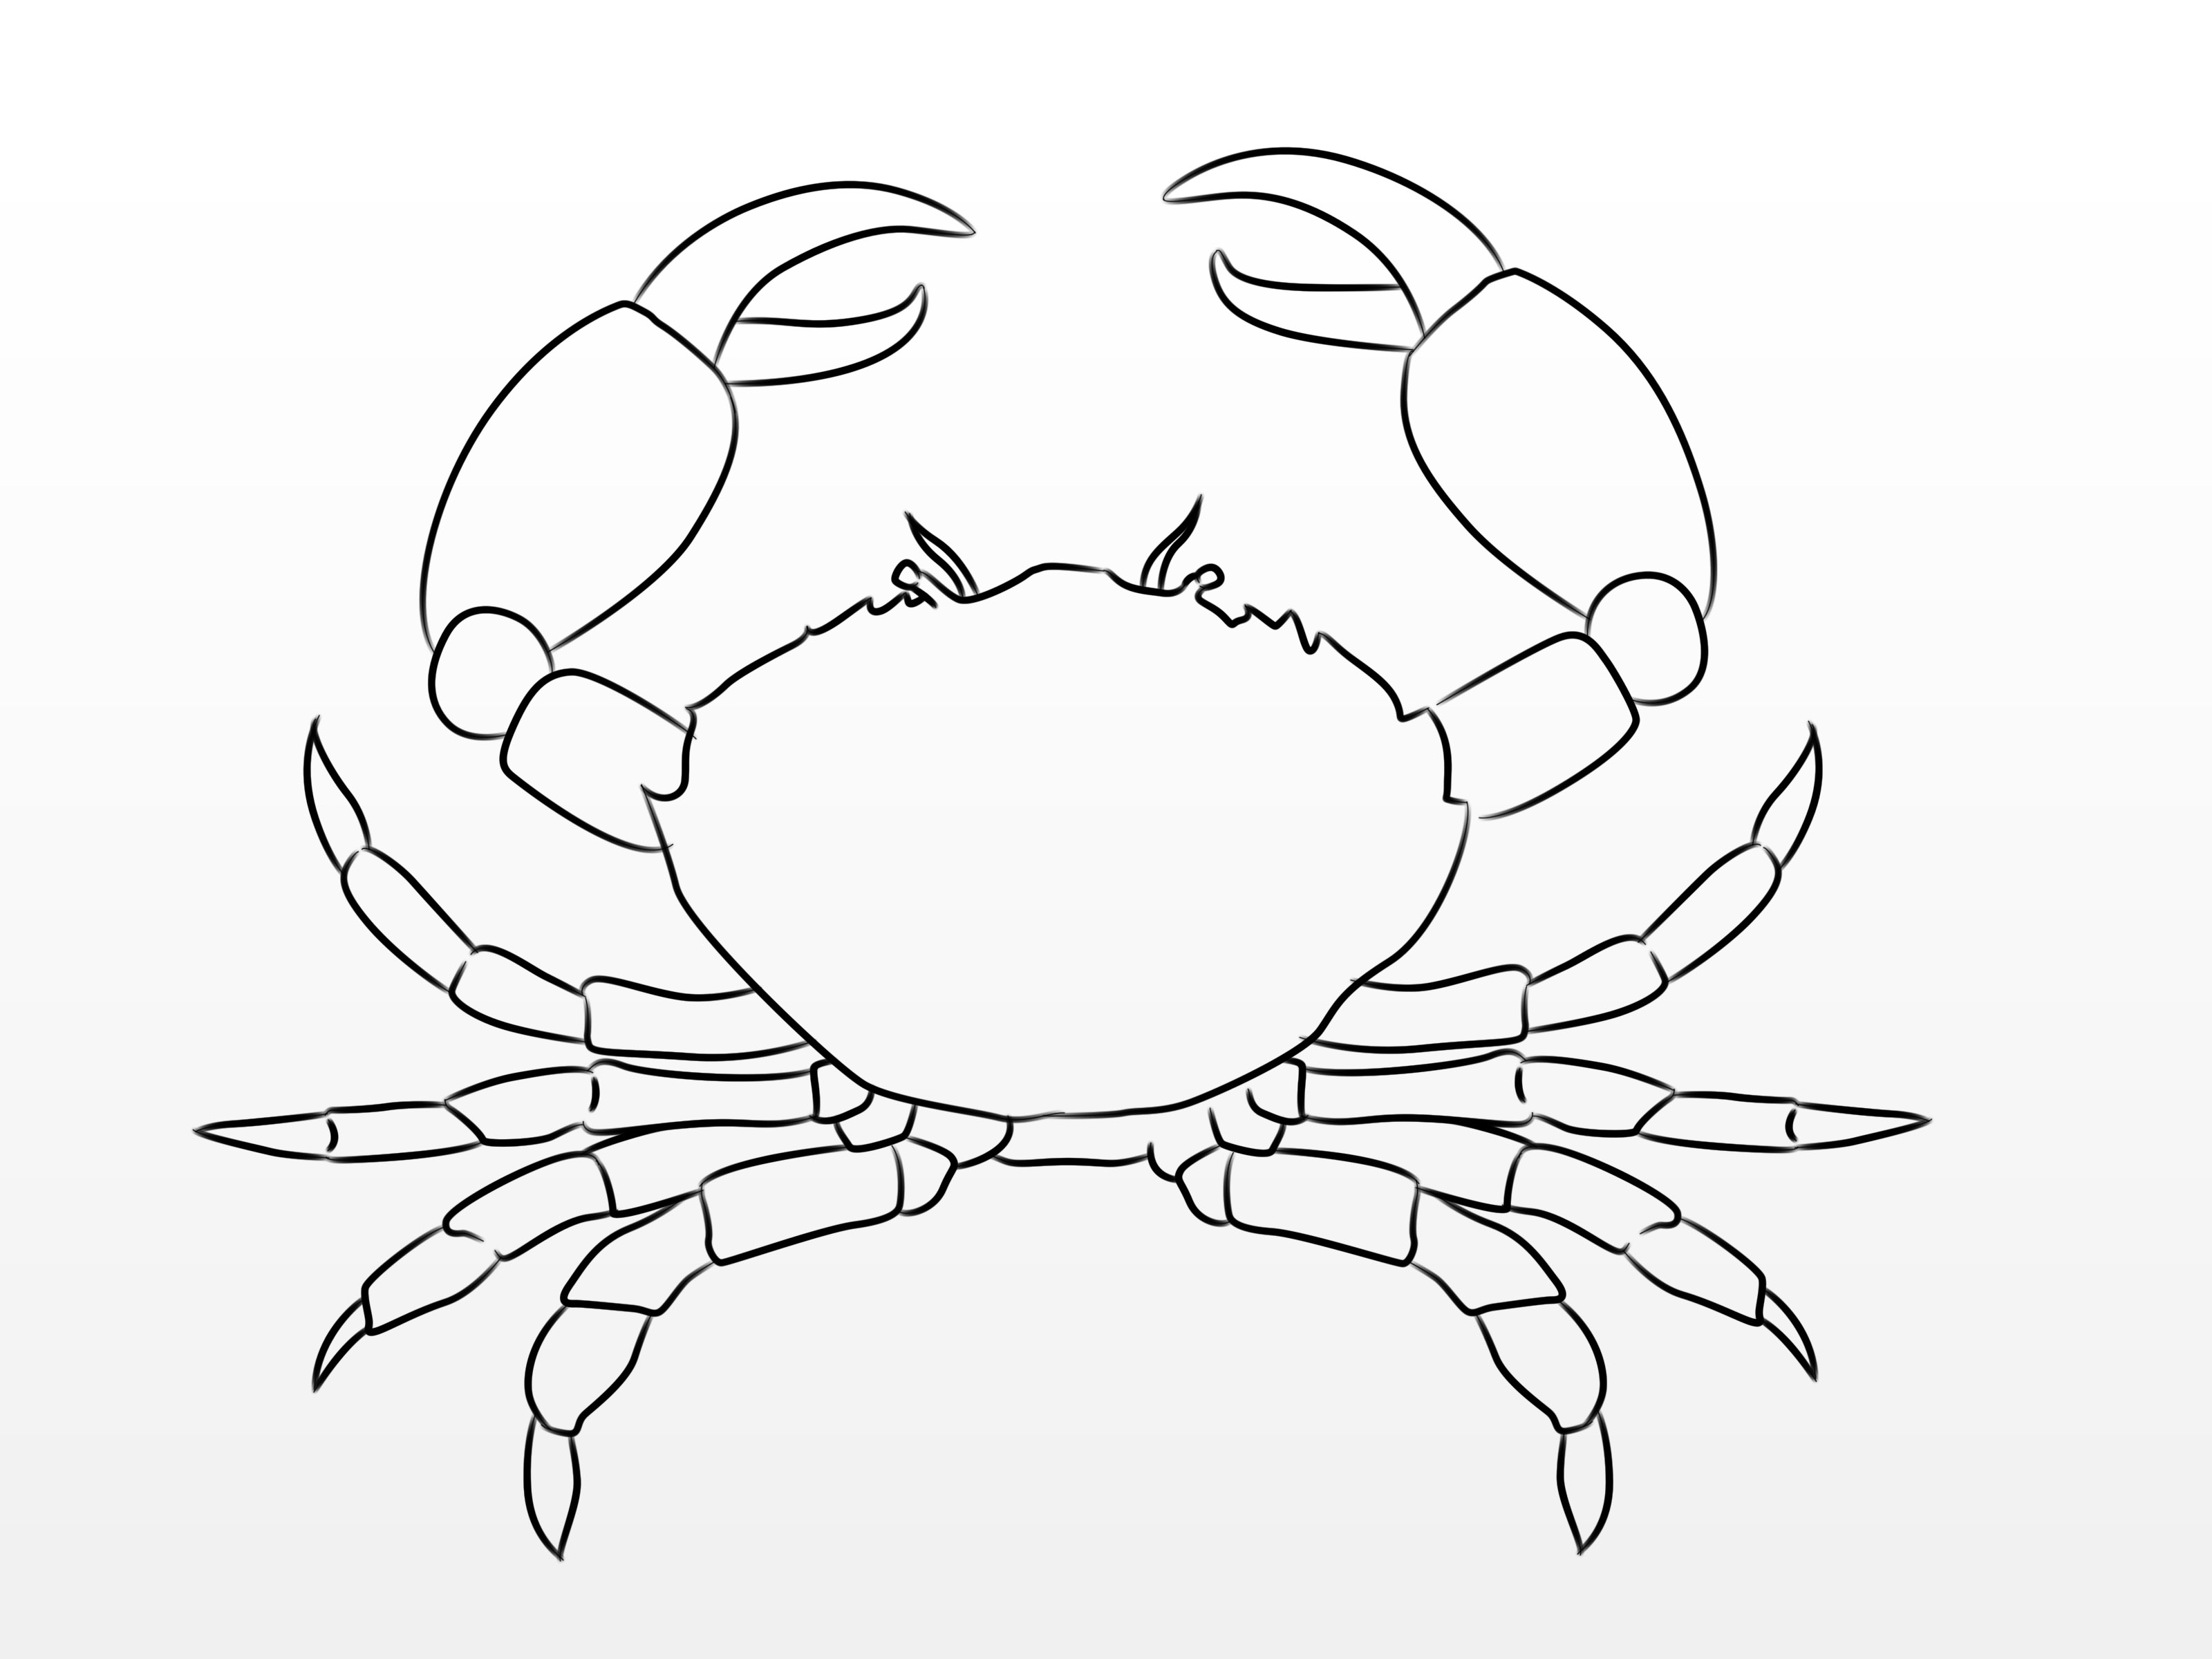 Drawn crab #3